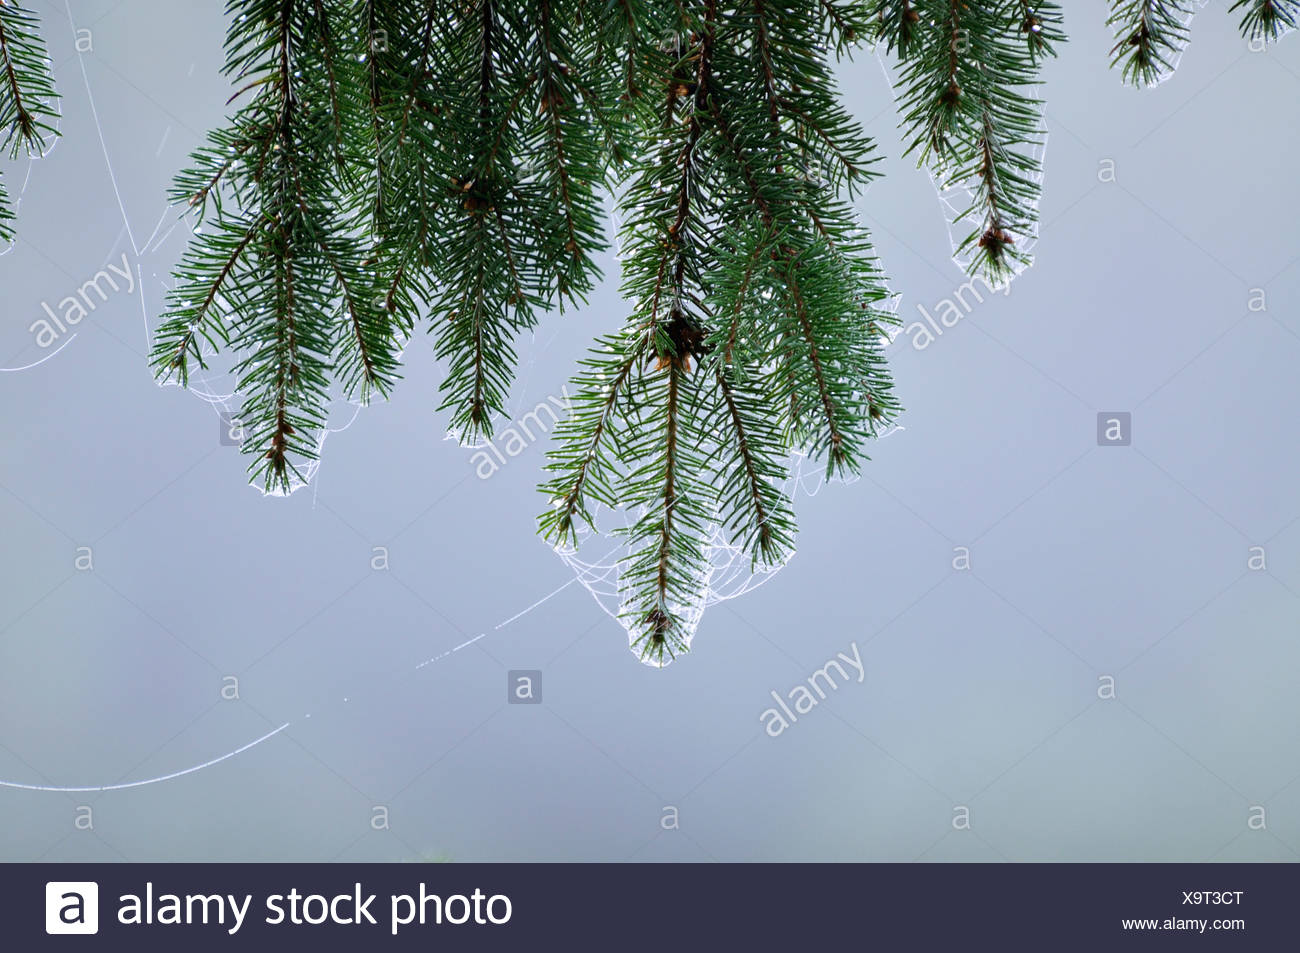 Fir tree and spider''s web, close-up, Sweden. - Stock Image